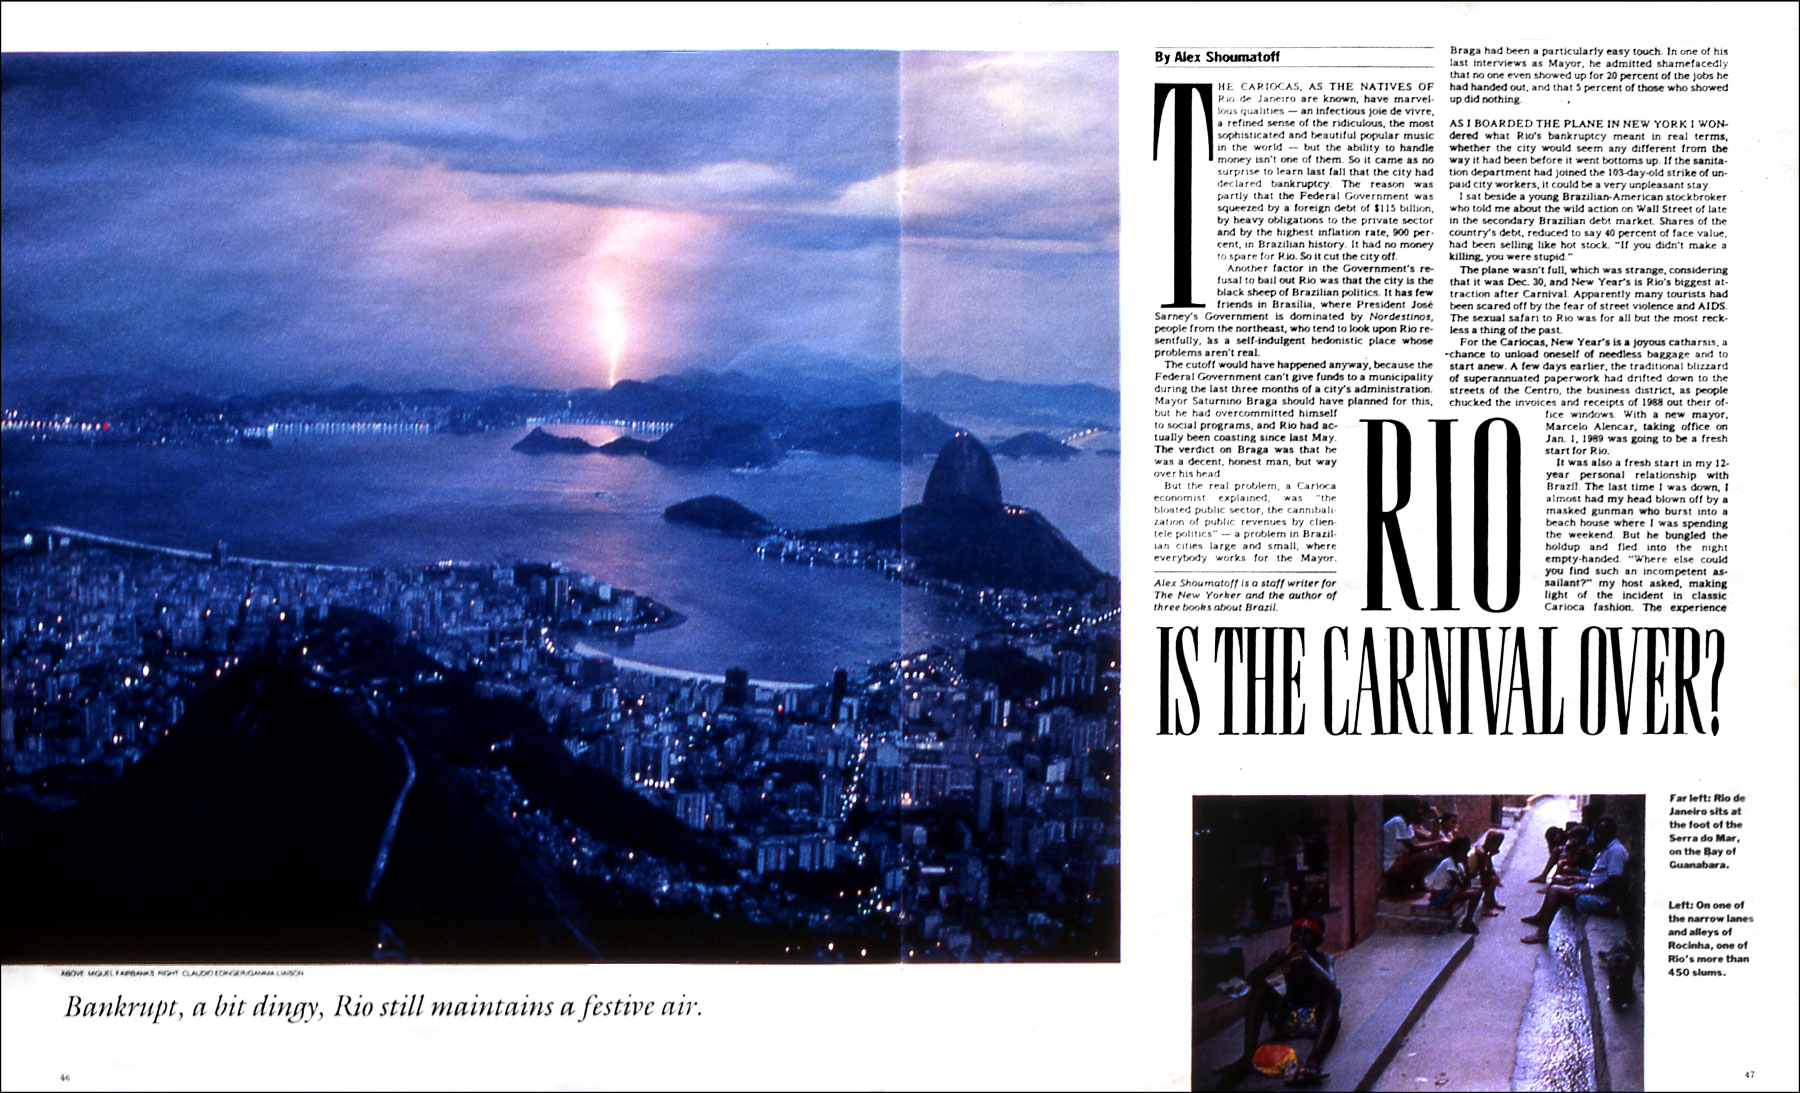 Photo of Pão de Azucar from the famed statue of Corocovado, overlooking Rio de Janeiro, Brazil, host of the 2016 Olympics.(for The New York Times Magazine)